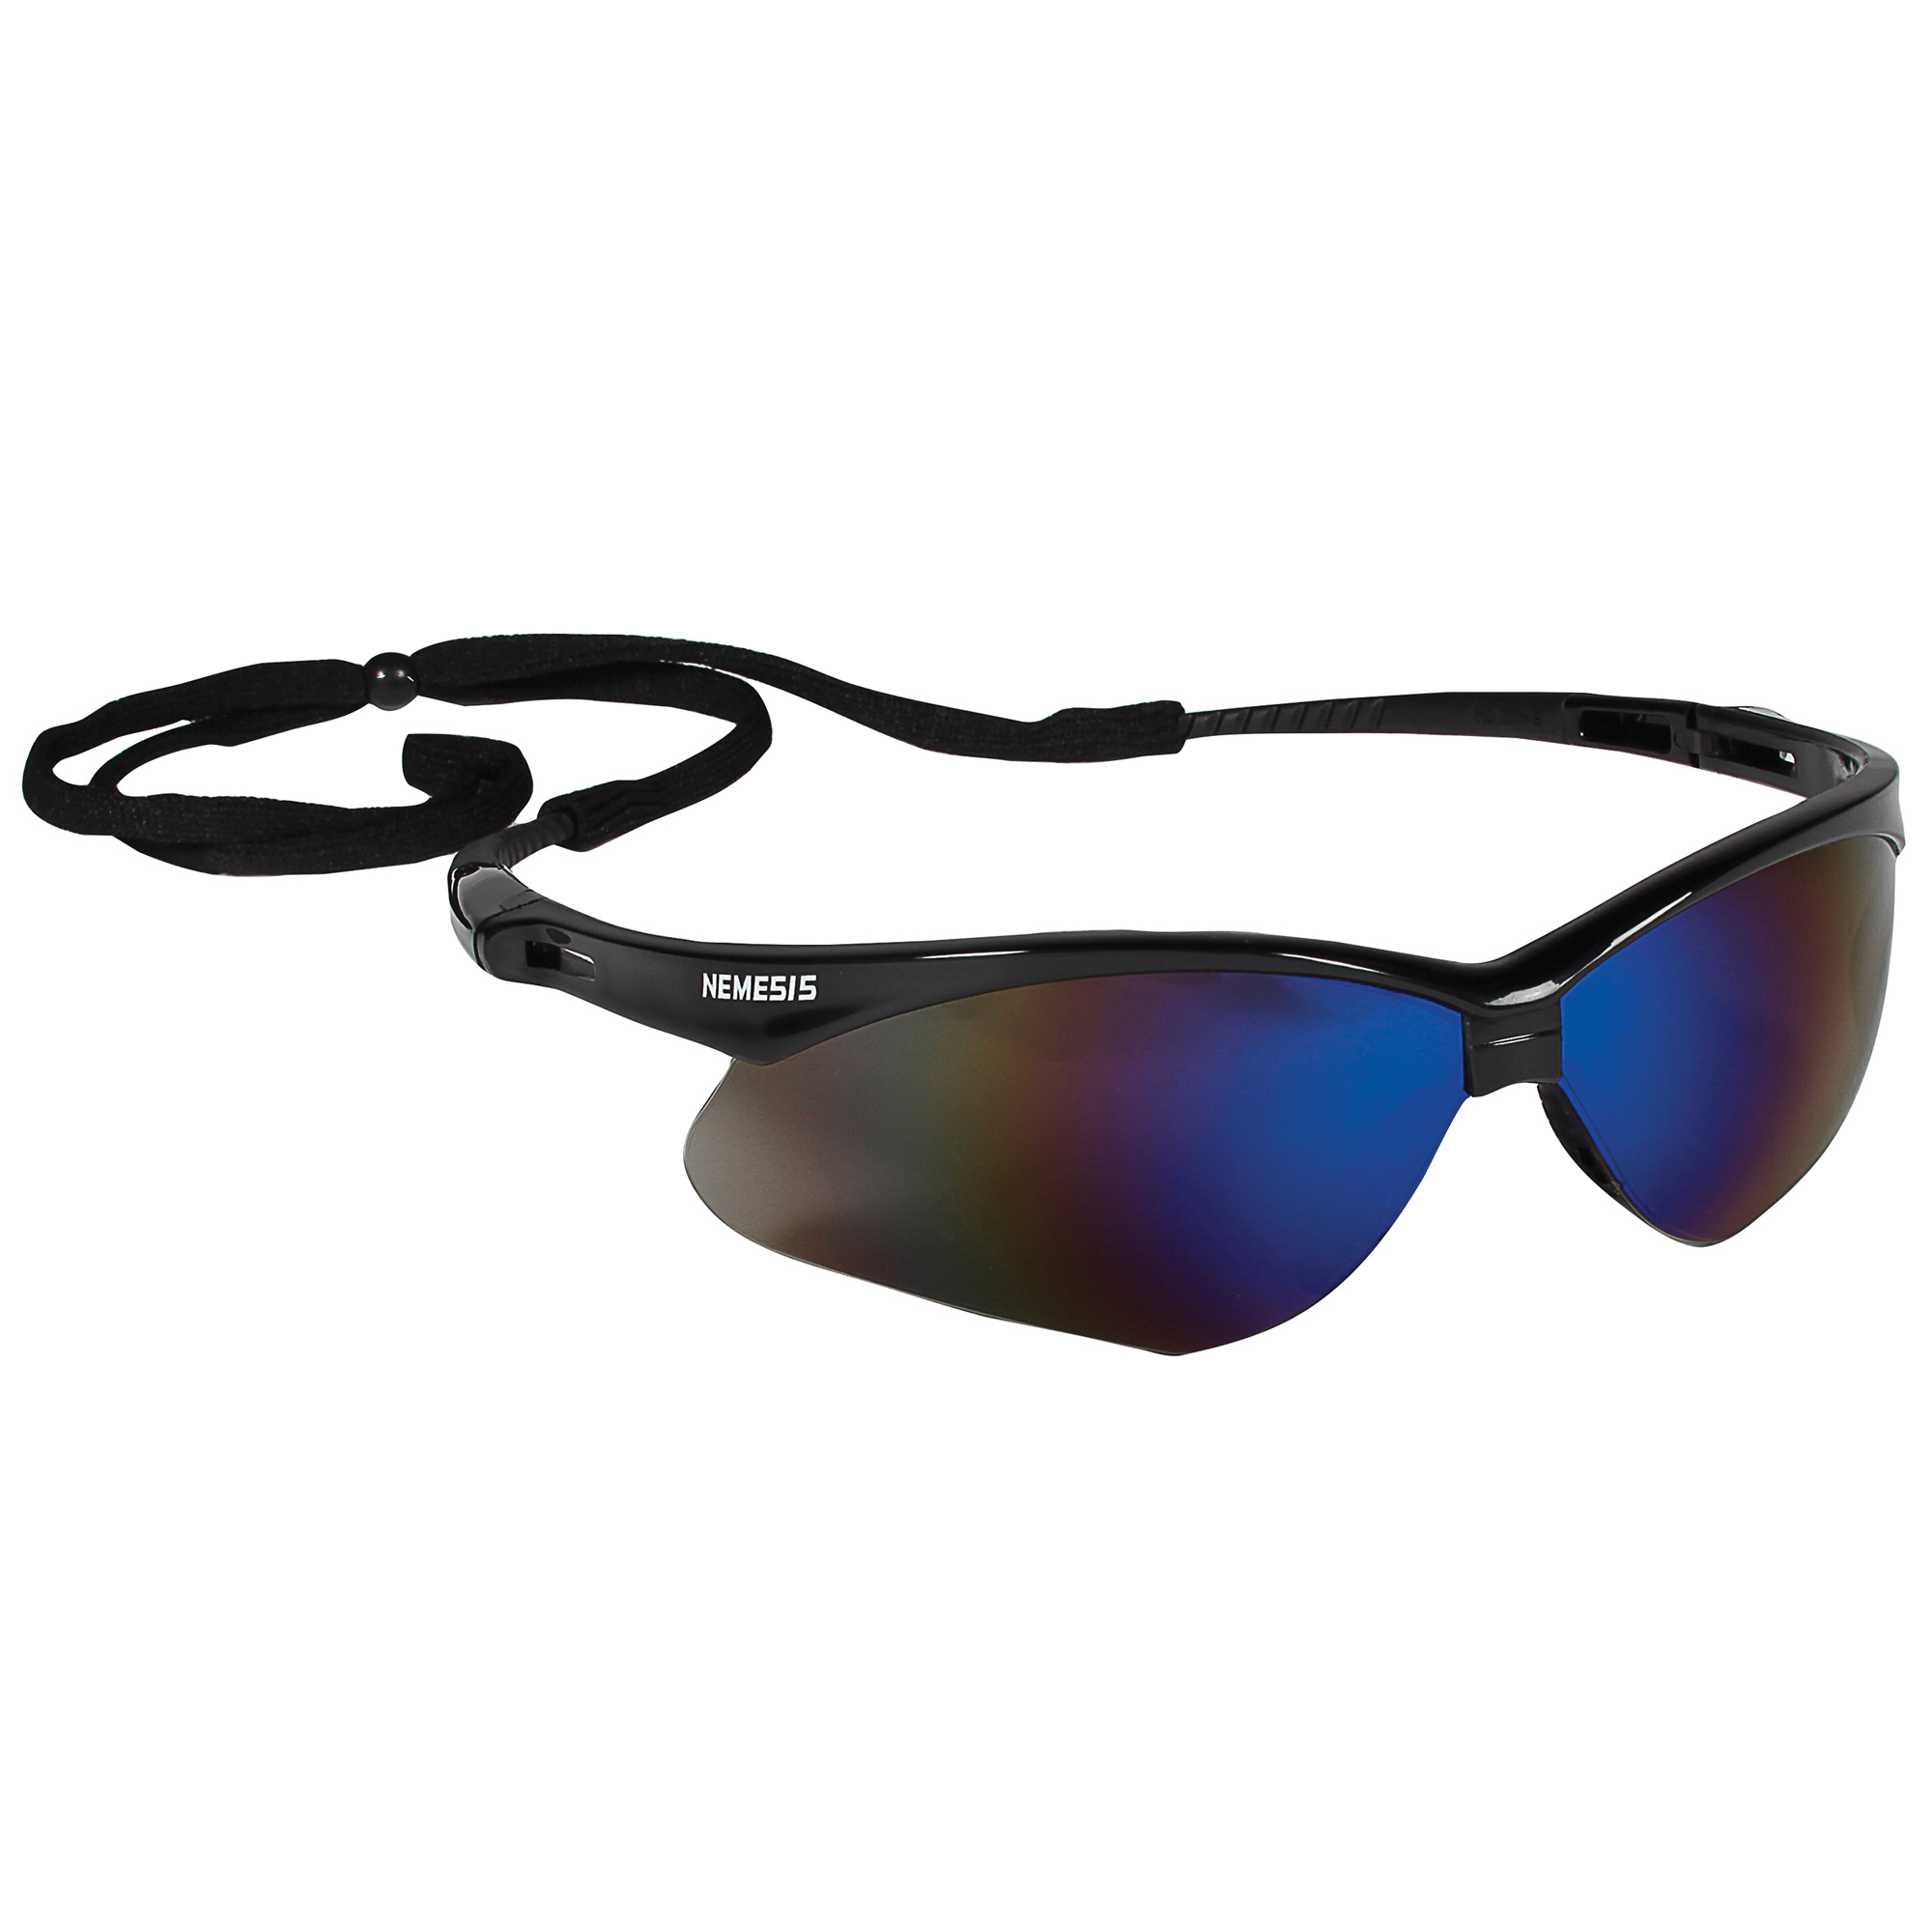 Jackson Safety* 14480 V20 Envision* Safety Glasses, Anti-Scratch, Indoor/Outdoor Lens, Wrap Around Frame, Black, Polycarbonate Frame, Polycarbonate Lens, ANSI Z87.1+2010